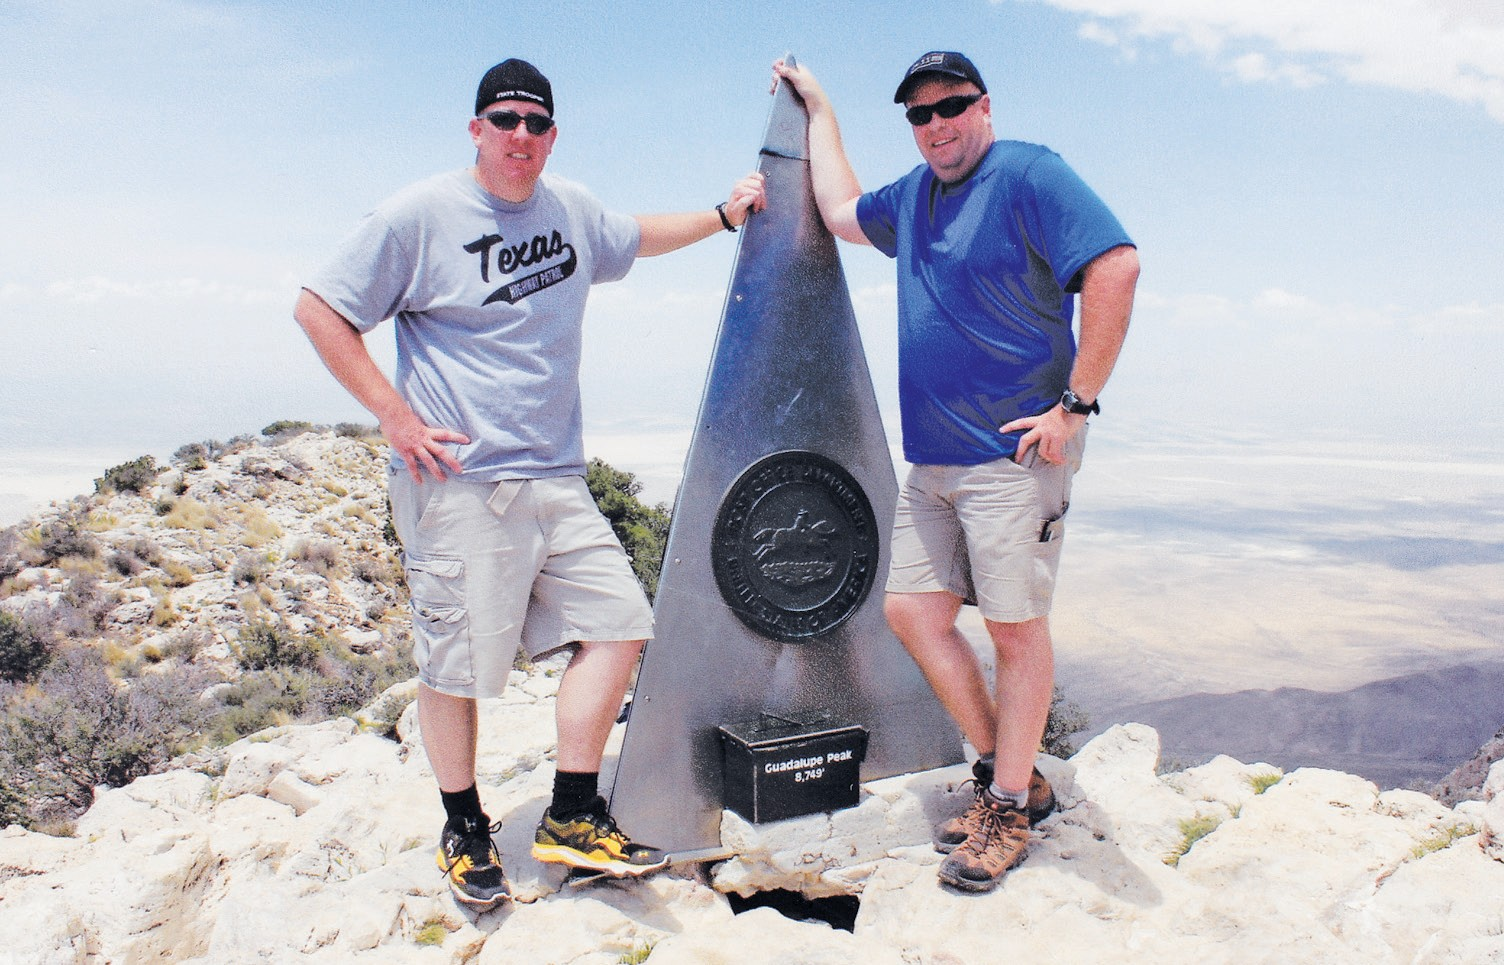 To honor their fellow fallen officers, Troopers (from left) Trent Greebon and Waylon Rogers, participated in Cops on Top by climbing the highest peak in Texas - Guadalupe Peak in the Guadalupe Mountains near Van Horn.